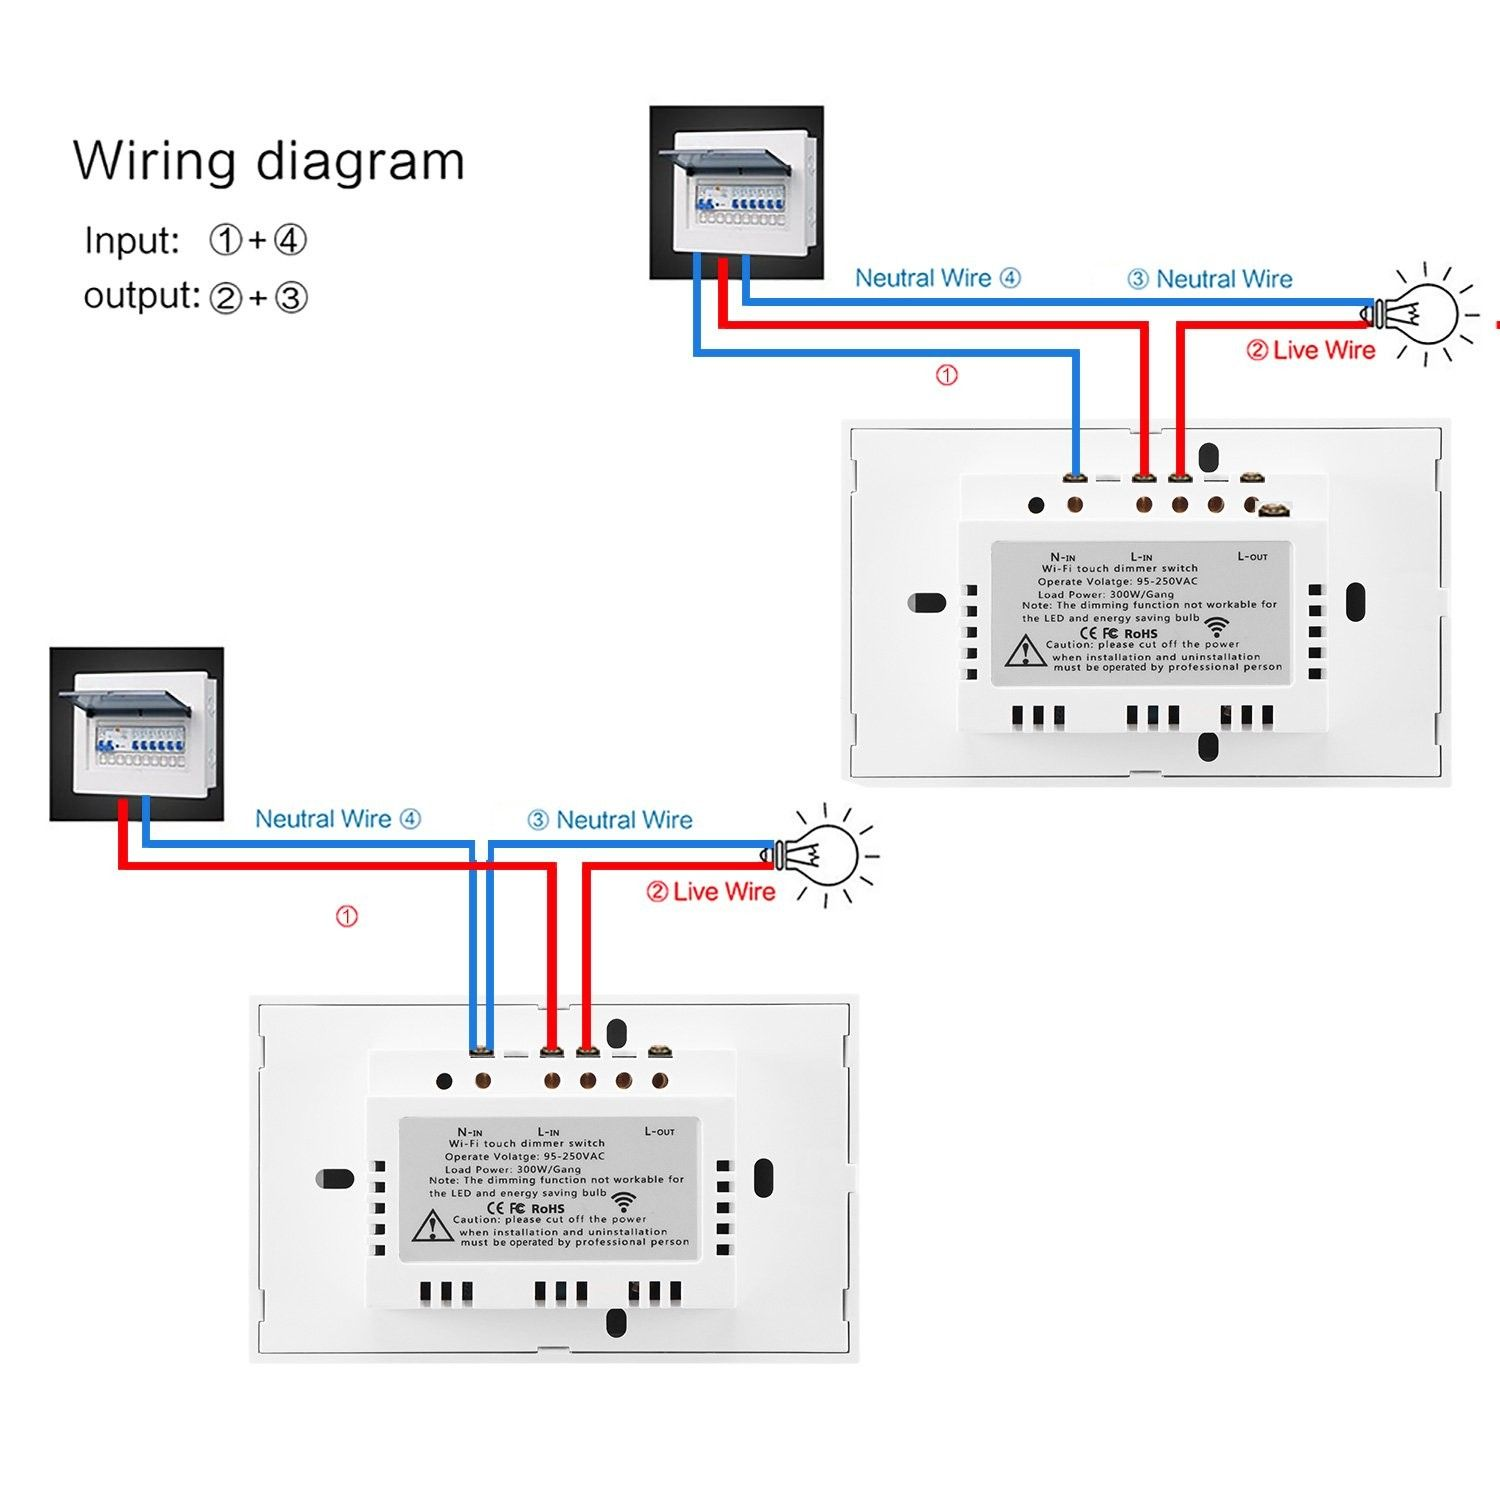 [DIAGRAM_38ZD]  Unique Wiring Diagram for A Leviton Dimmer Switch #diagram #diagramtemplate  #diagramsample | Led Switch 250vac Wiring Diagram |  | Pinterest